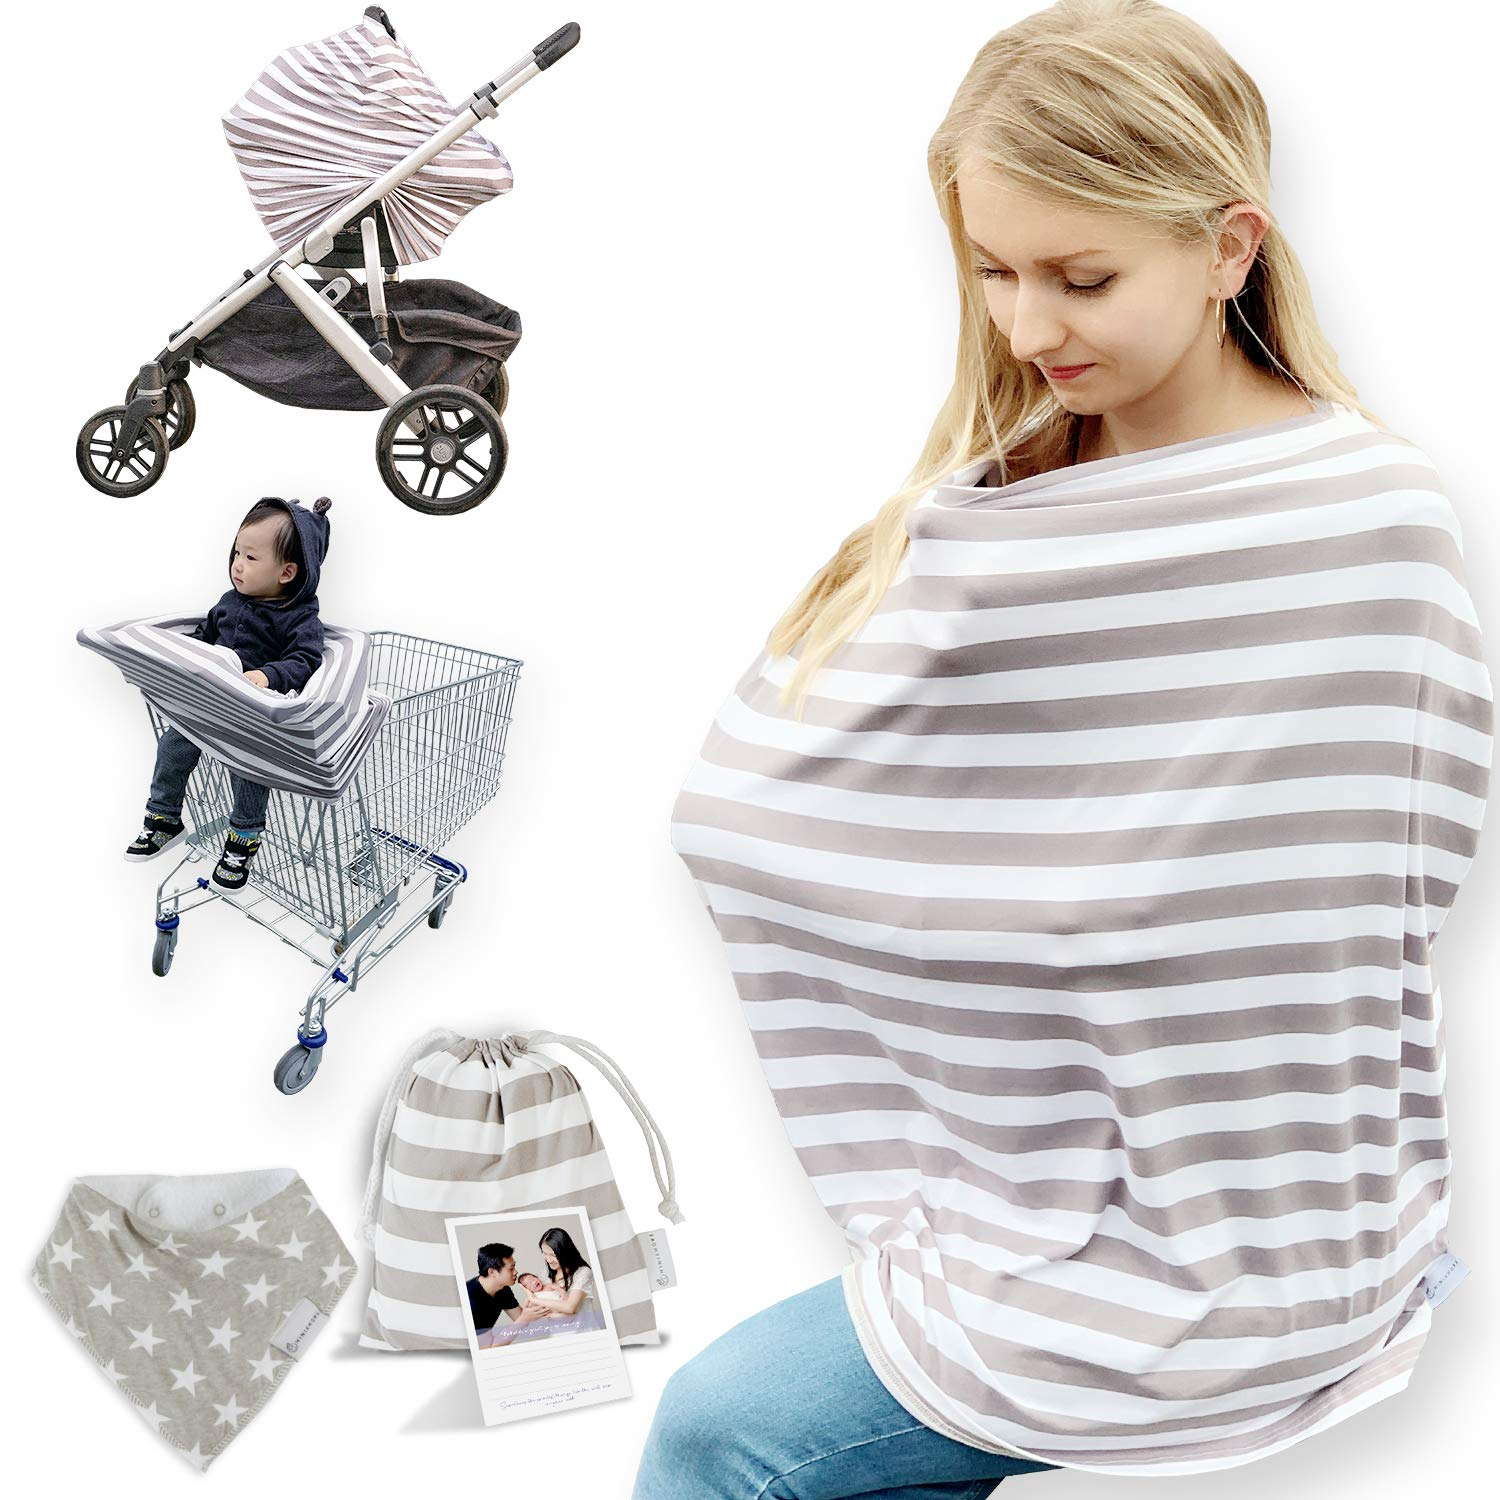 Bulary Breastfeeding Cover Nursing Cover Scarf Multi-purpose Breastfeeding Towel Mums Breastfeeding Apron Shawl Baby Car Seat Cover Breathable Cotton